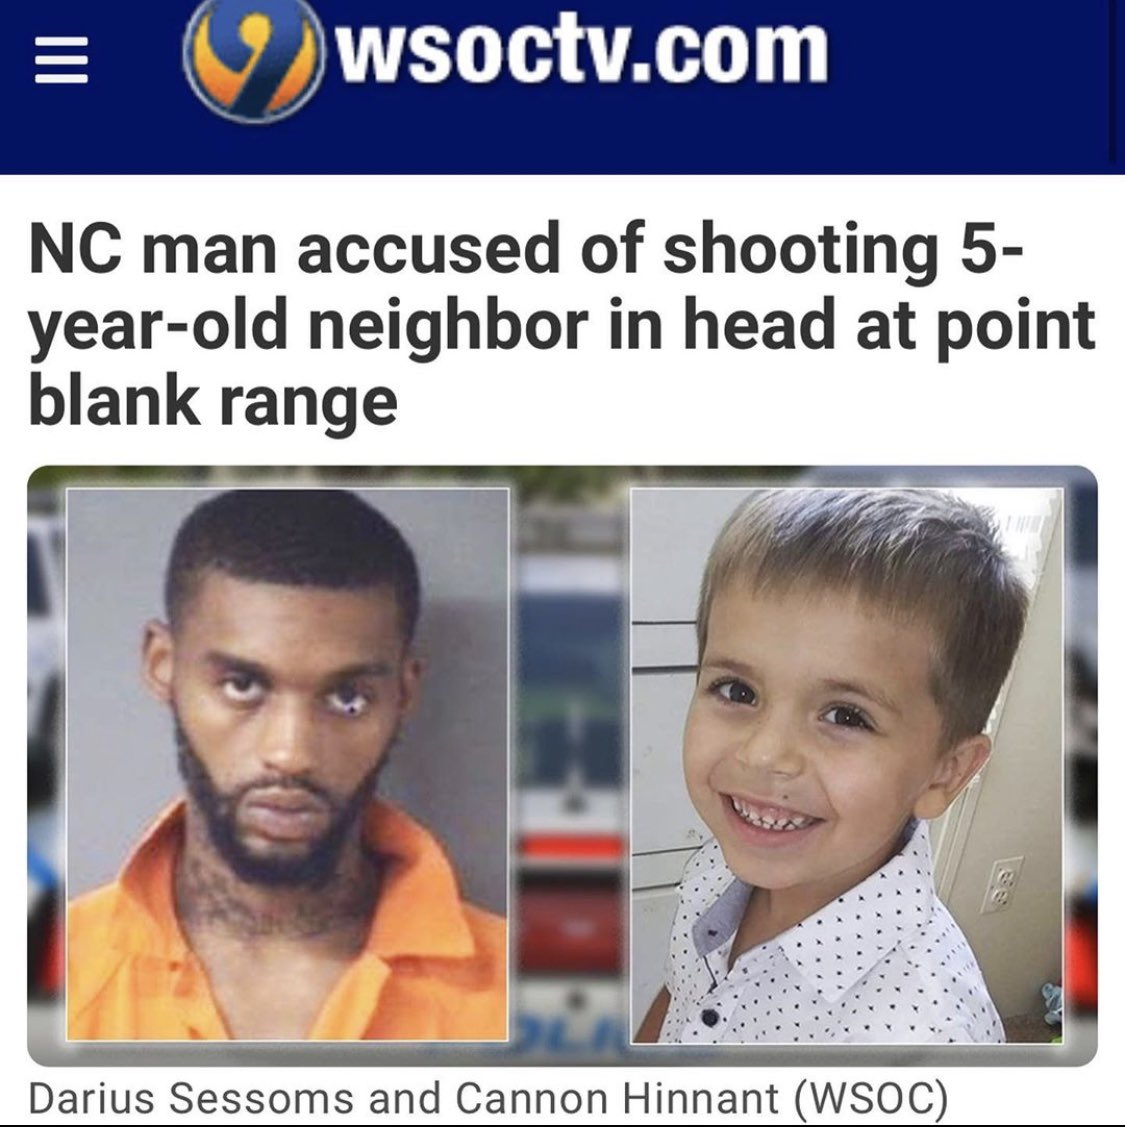 5-yr-old Cannon Hinnant was executed point blank in front of his 2 sisters in broad daylight while they were riding bikes. Because a violent criminal felt like shooting a boy in the head.  National media remains SILENT on this heinous murder.   It doesn't fit their narrative. https://t.co/uyX4zReX3t